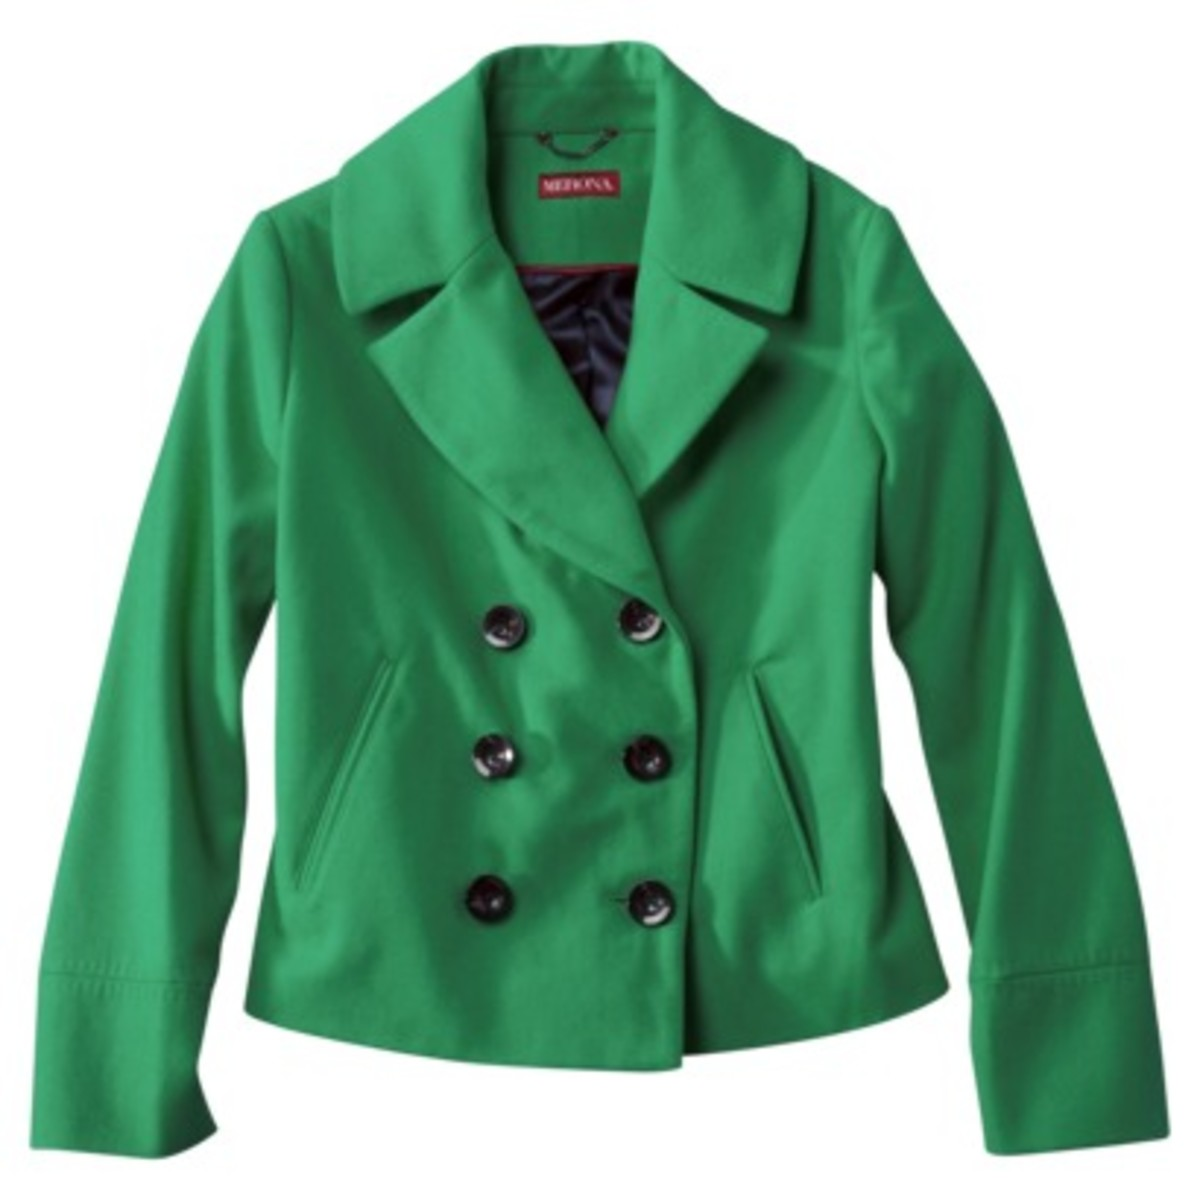 This emerald green pea coat is a perfect addition to your winter wardrobe at an affordable price point. The styling is on trend for the military trend and it's available in the color of the year!